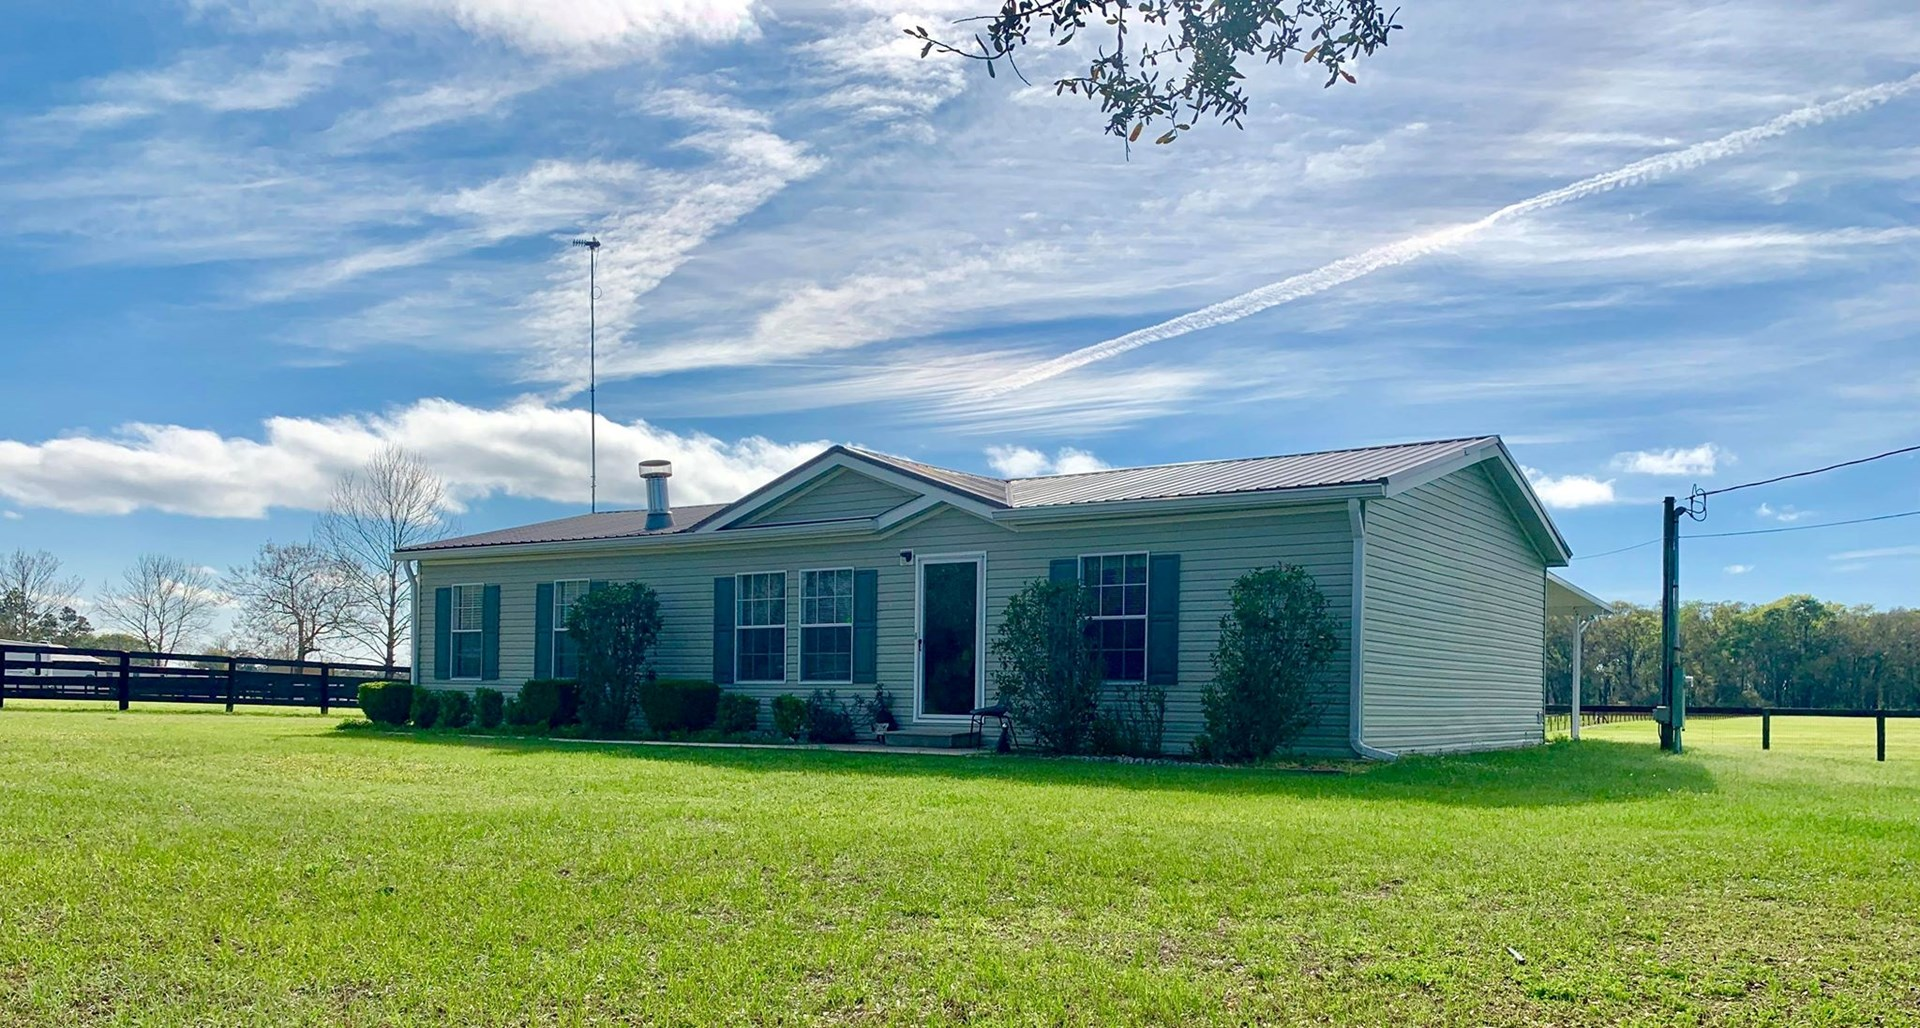 HOME FOR SALE IN EQUESTRIAN COMMUNITY - Bell, Florida